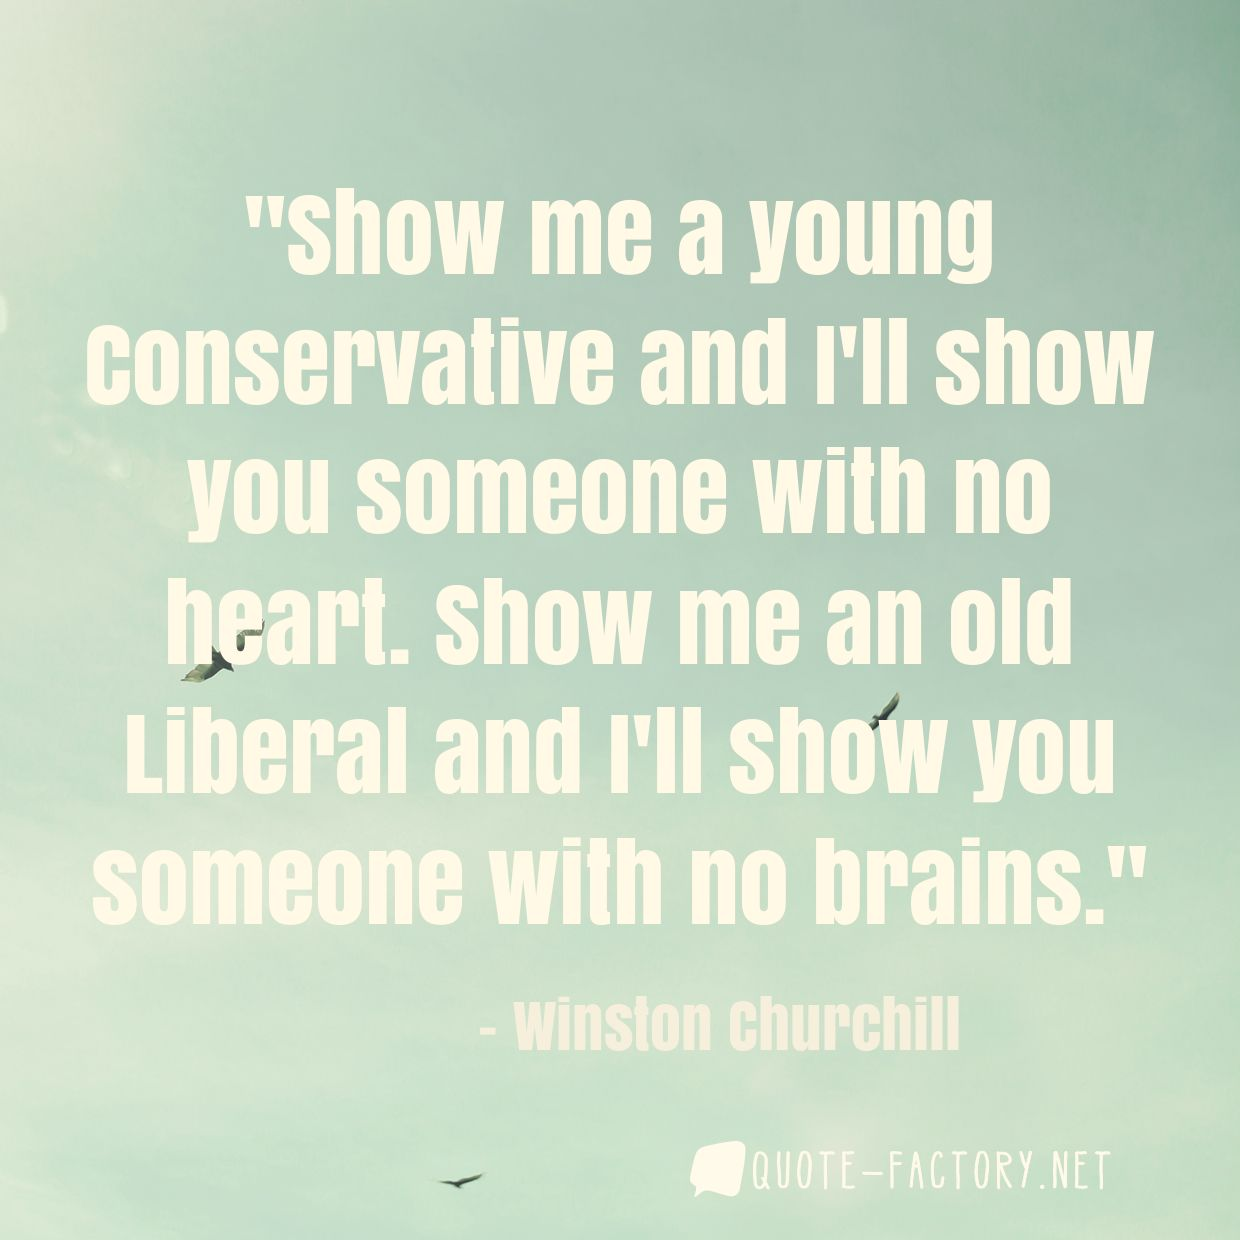 Show me a young Conservative and I'll show you someone with no heart. Show me an old Liberal and I'll show you someone with no brains.